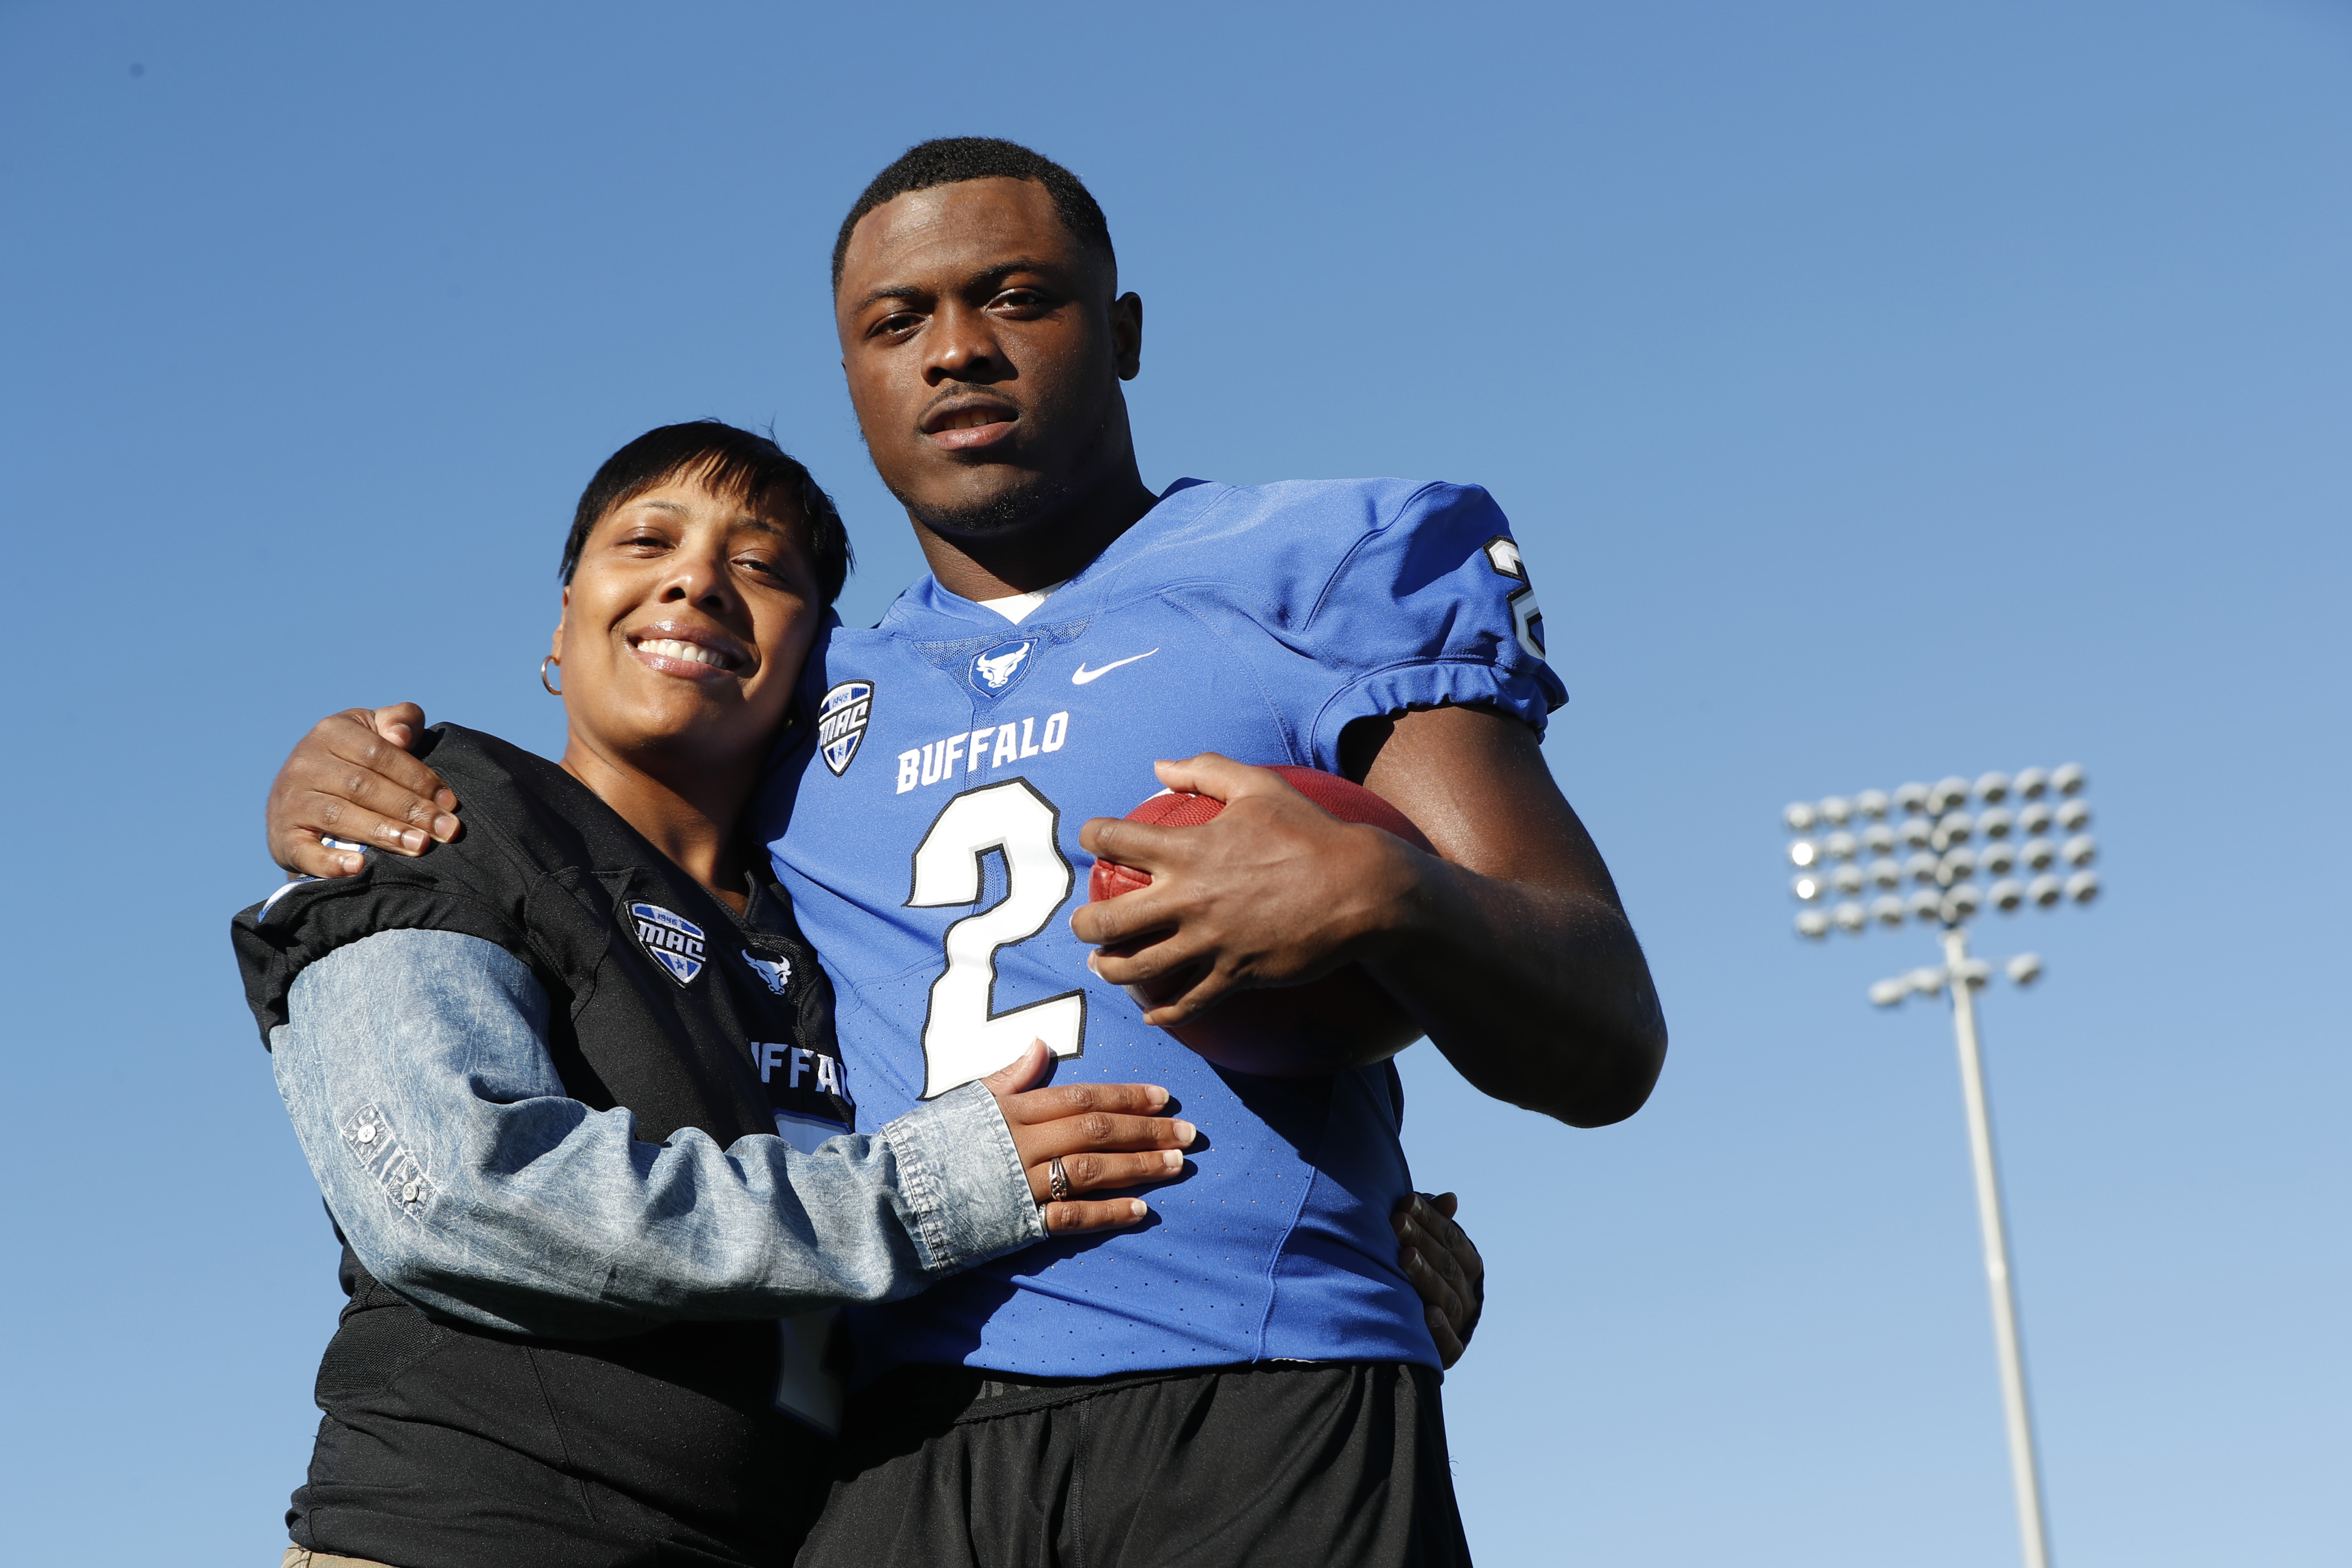 Former UB running back Jordan Johnson, pictured here with his mother, Tameka, is fighting for a spot on the Buffalo Bills' roster. (Harry Scull Jr./Buffalo News)